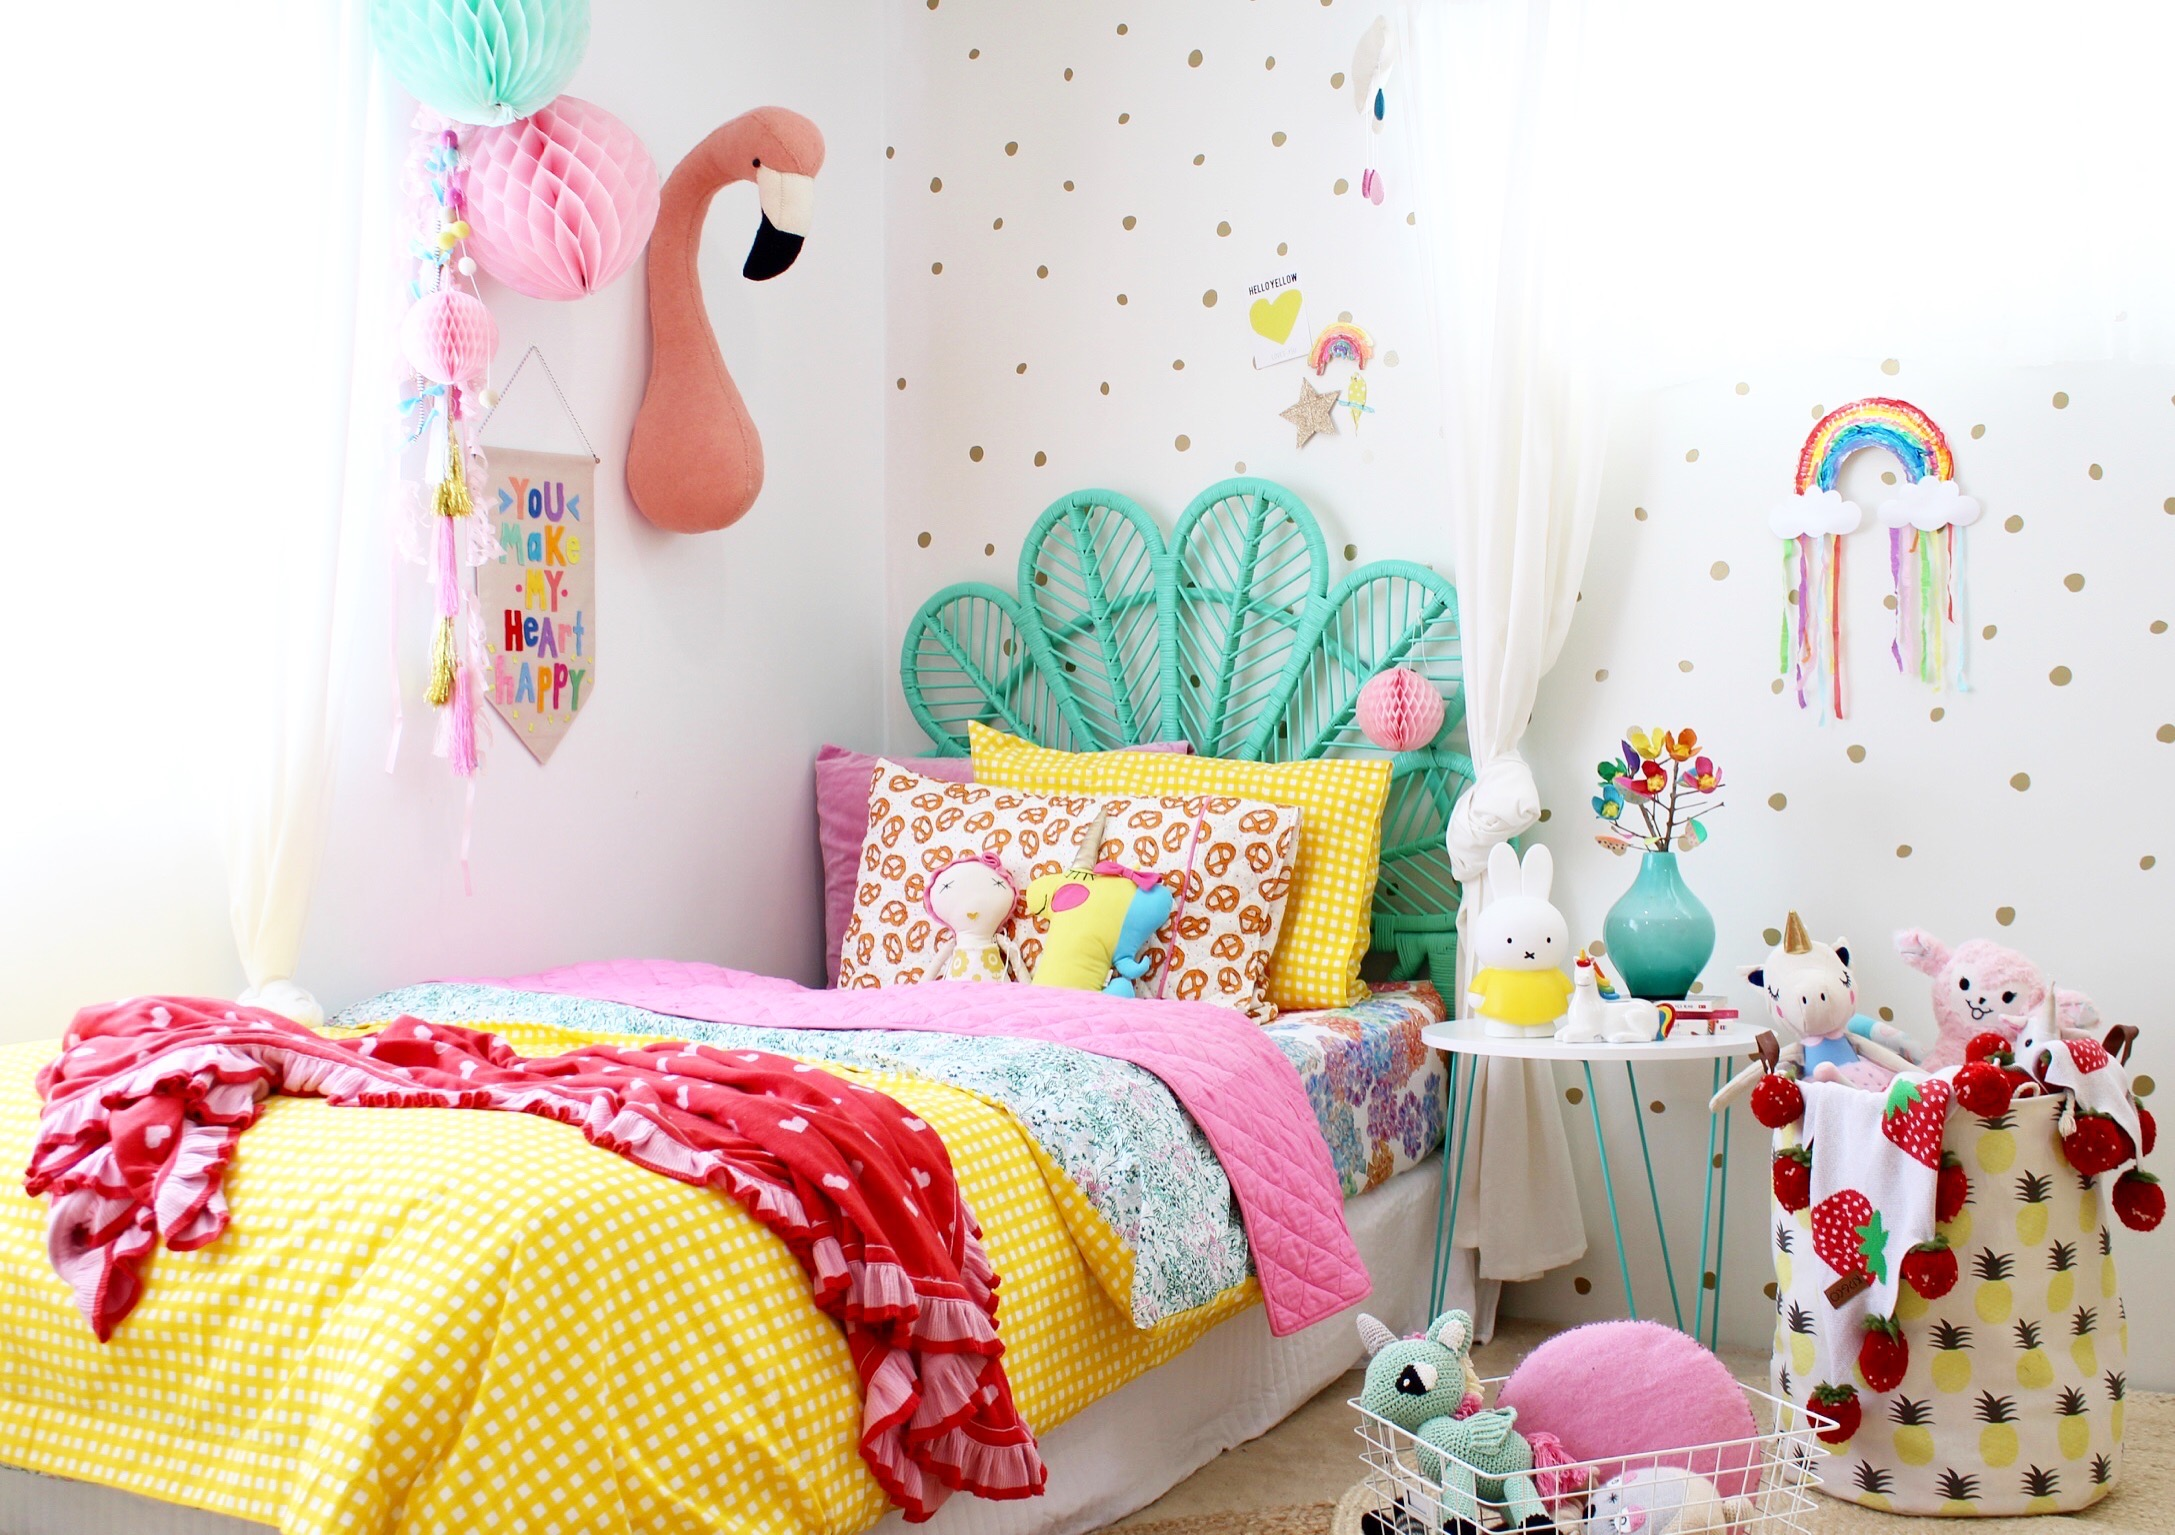 Kids bedroom ideas rainbow retreat four cheeky monkeys for Rainbow kids room